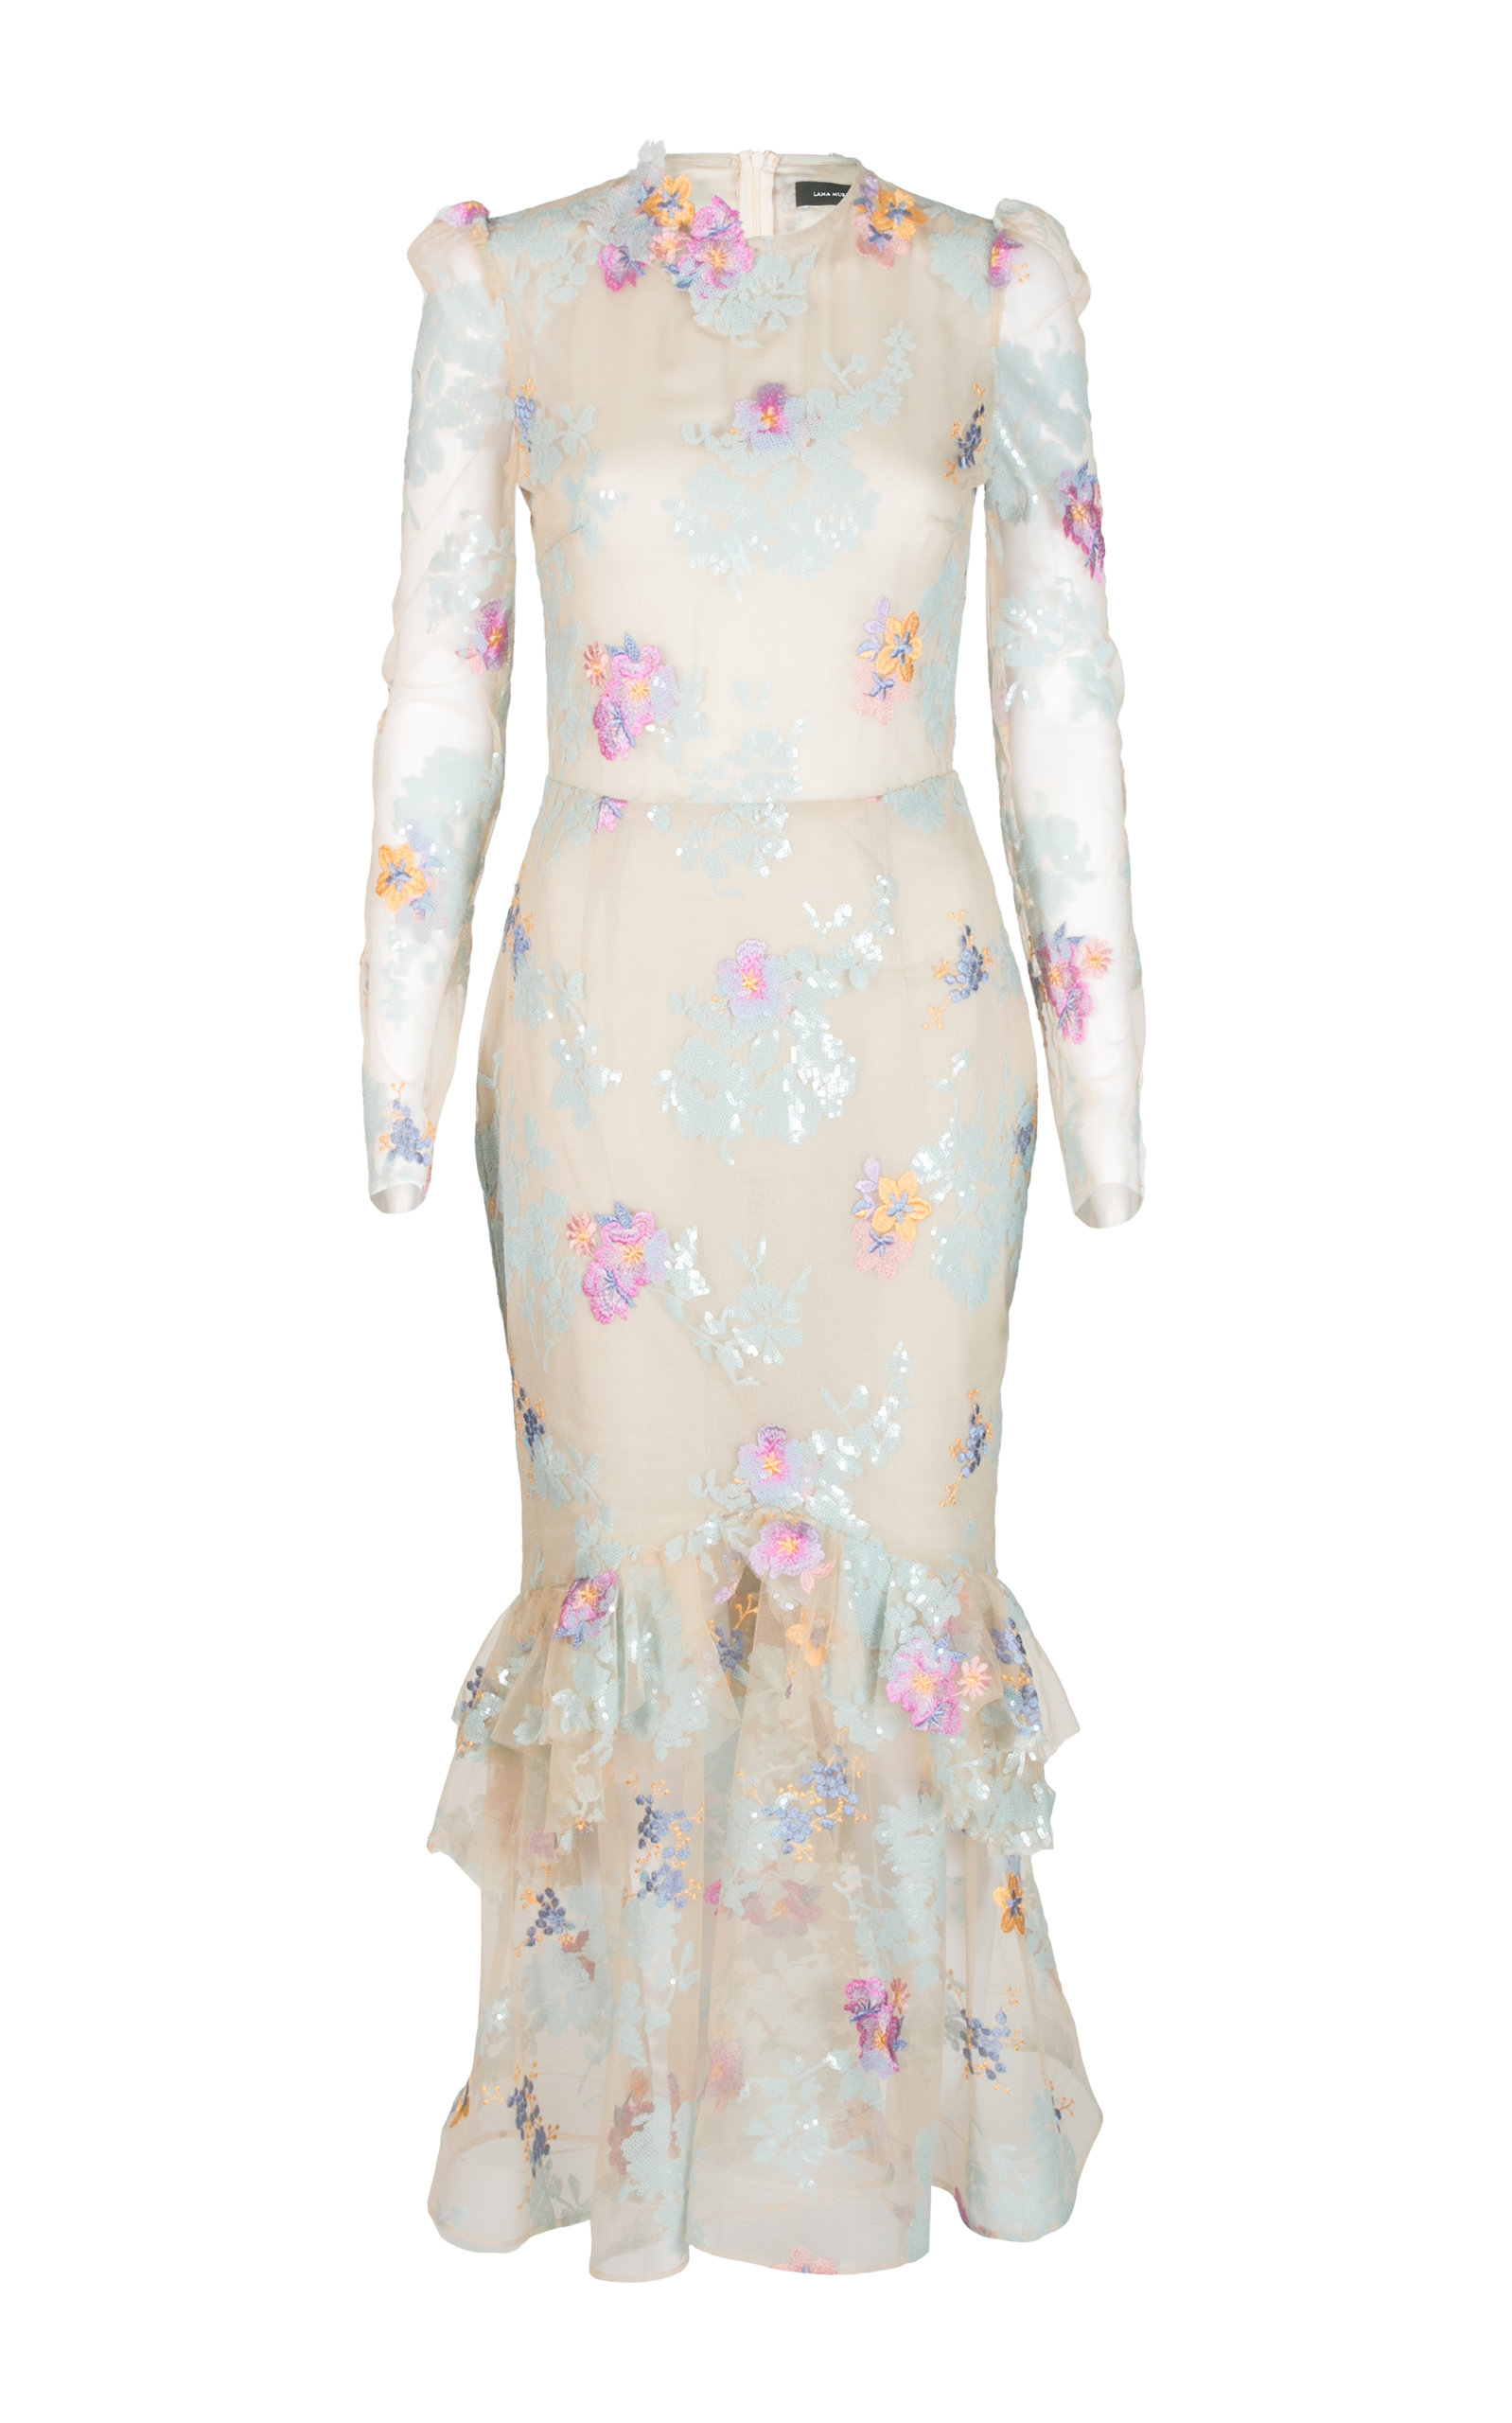 LANA MUELLER YOSAN EMBROIDERED GOWN